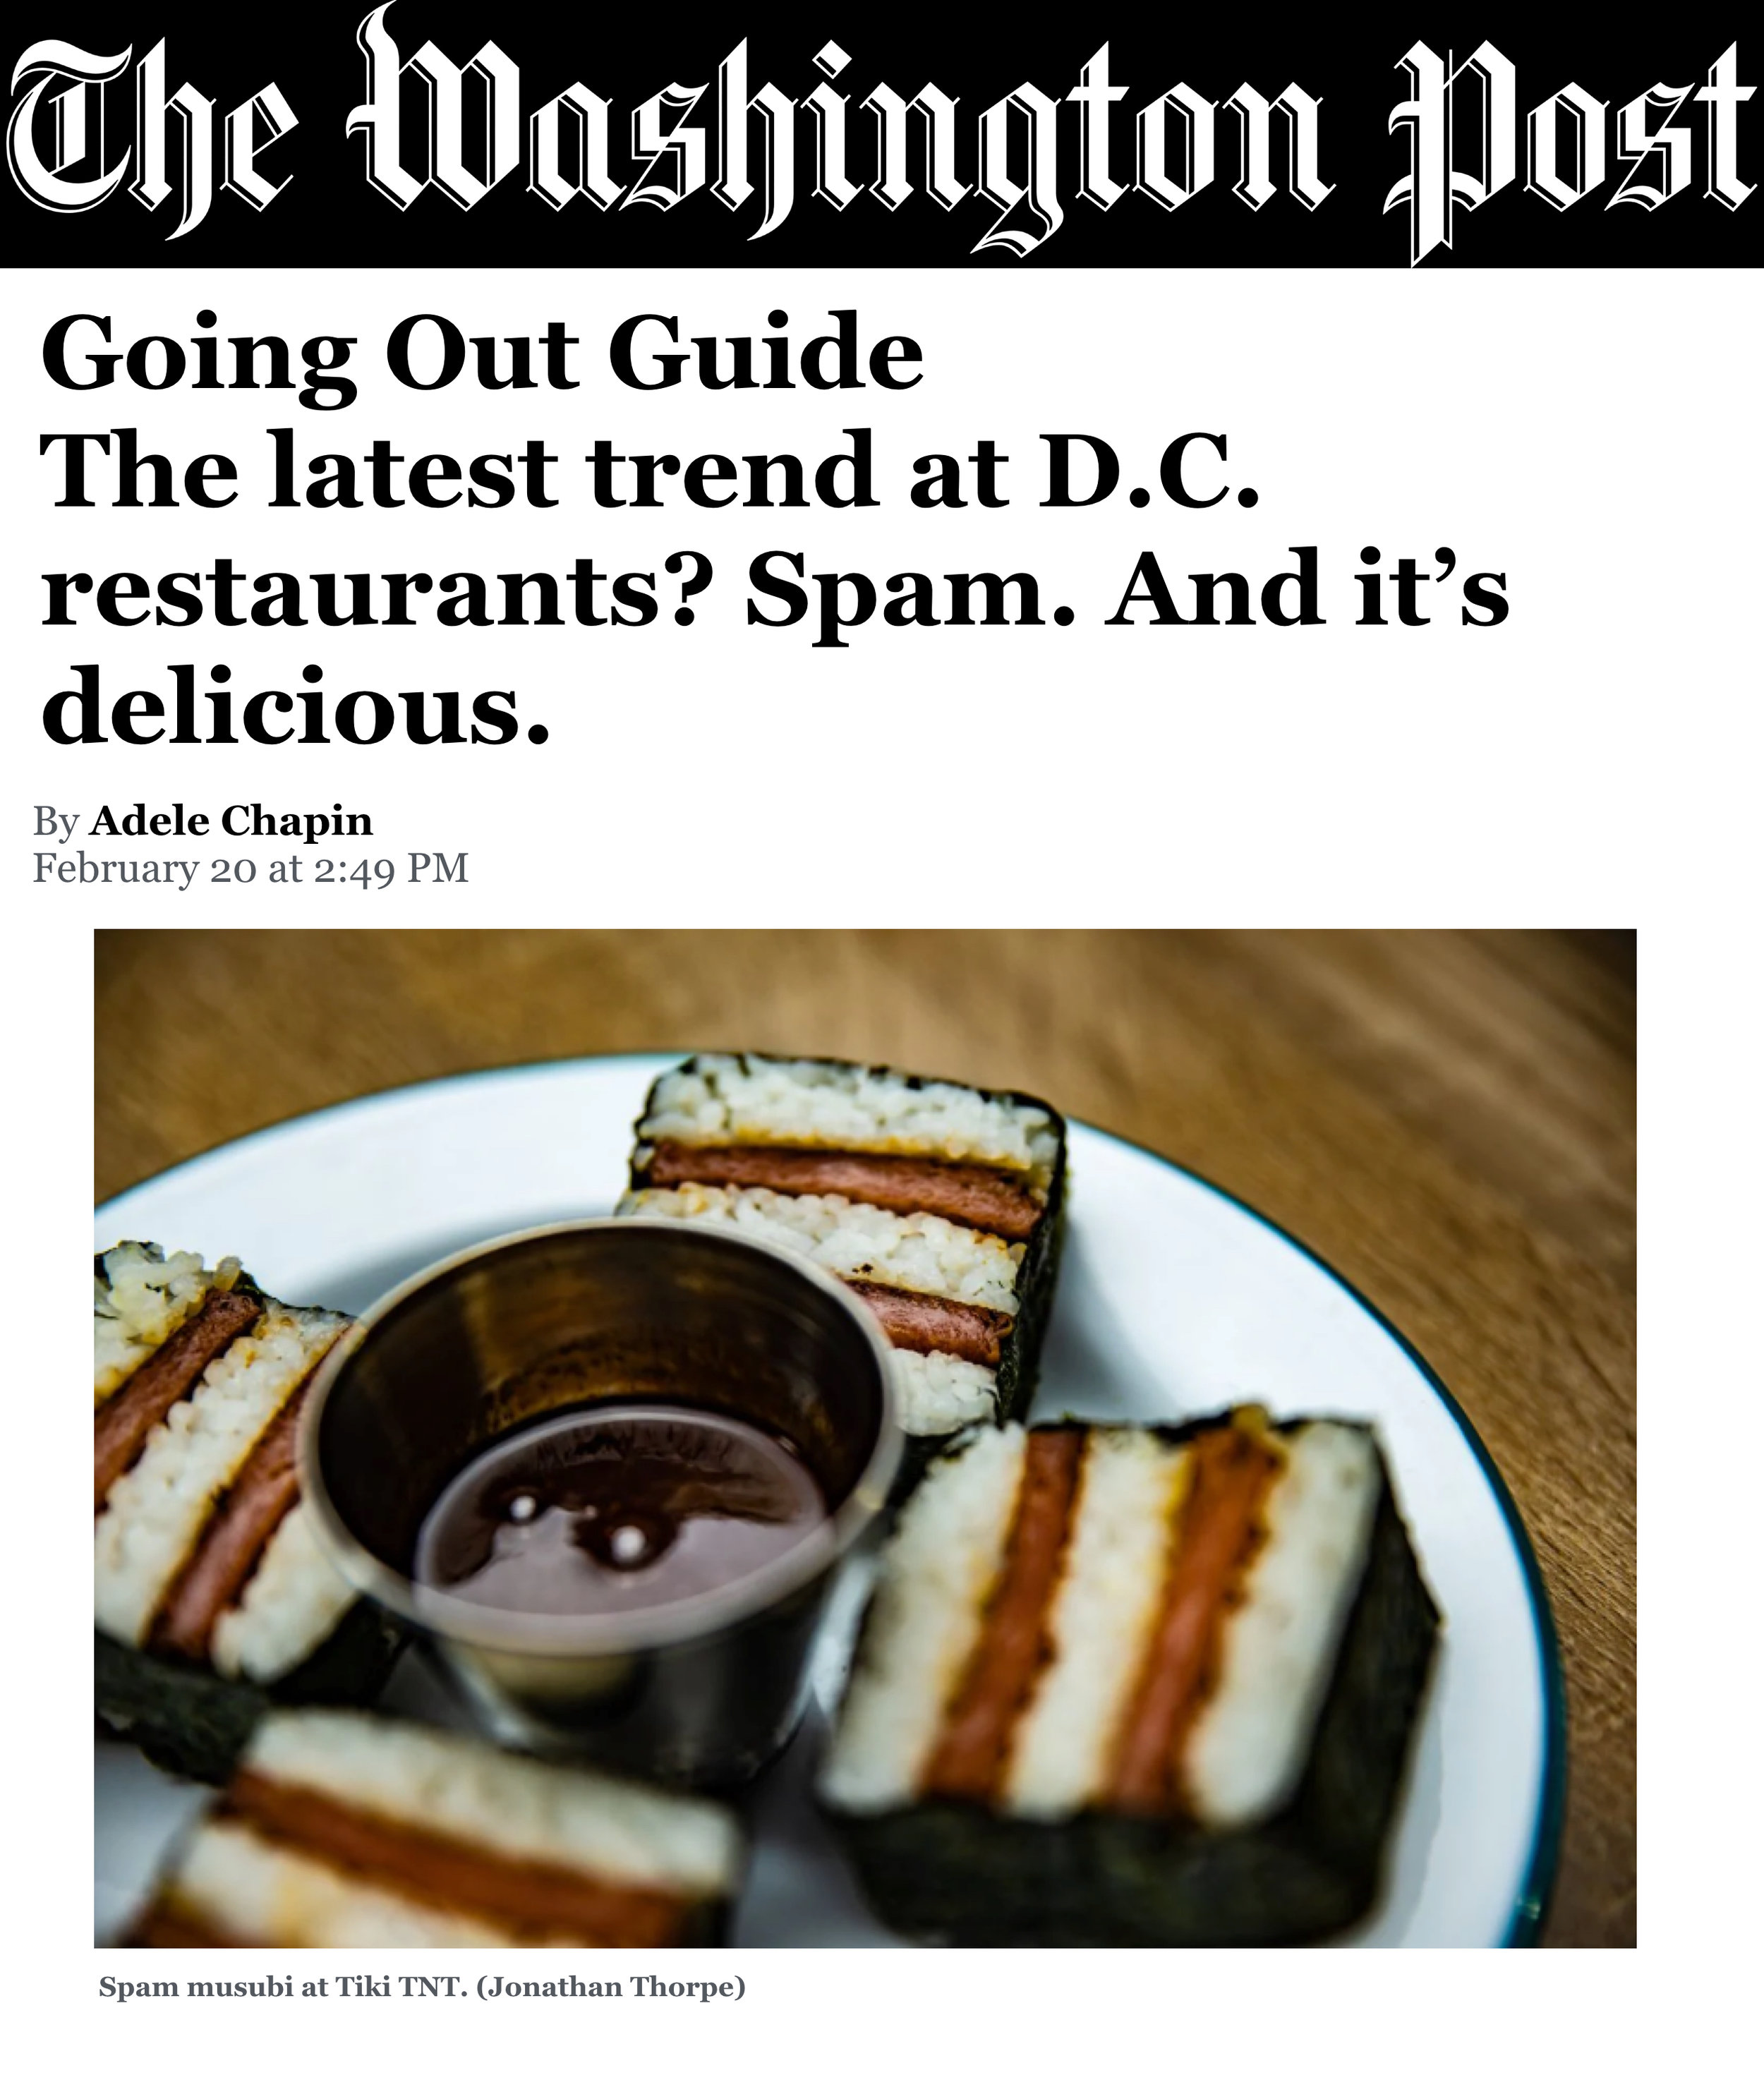 TheWashingtonPost_TikiTNT.001.jpeg